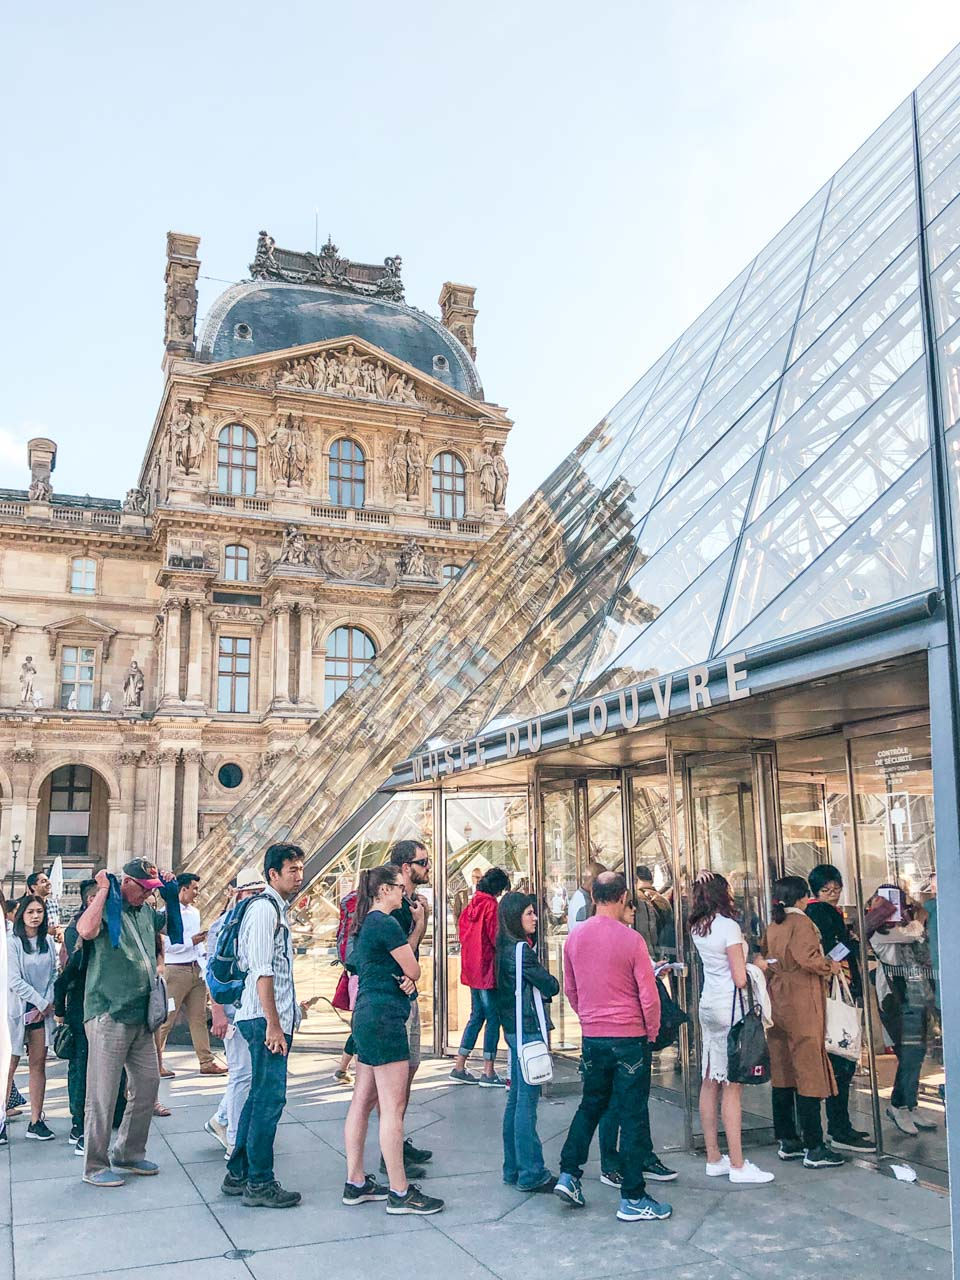 Crowds of tourists queueing outside the glass pyramid to get inside the Louvre Museum in Paris, France